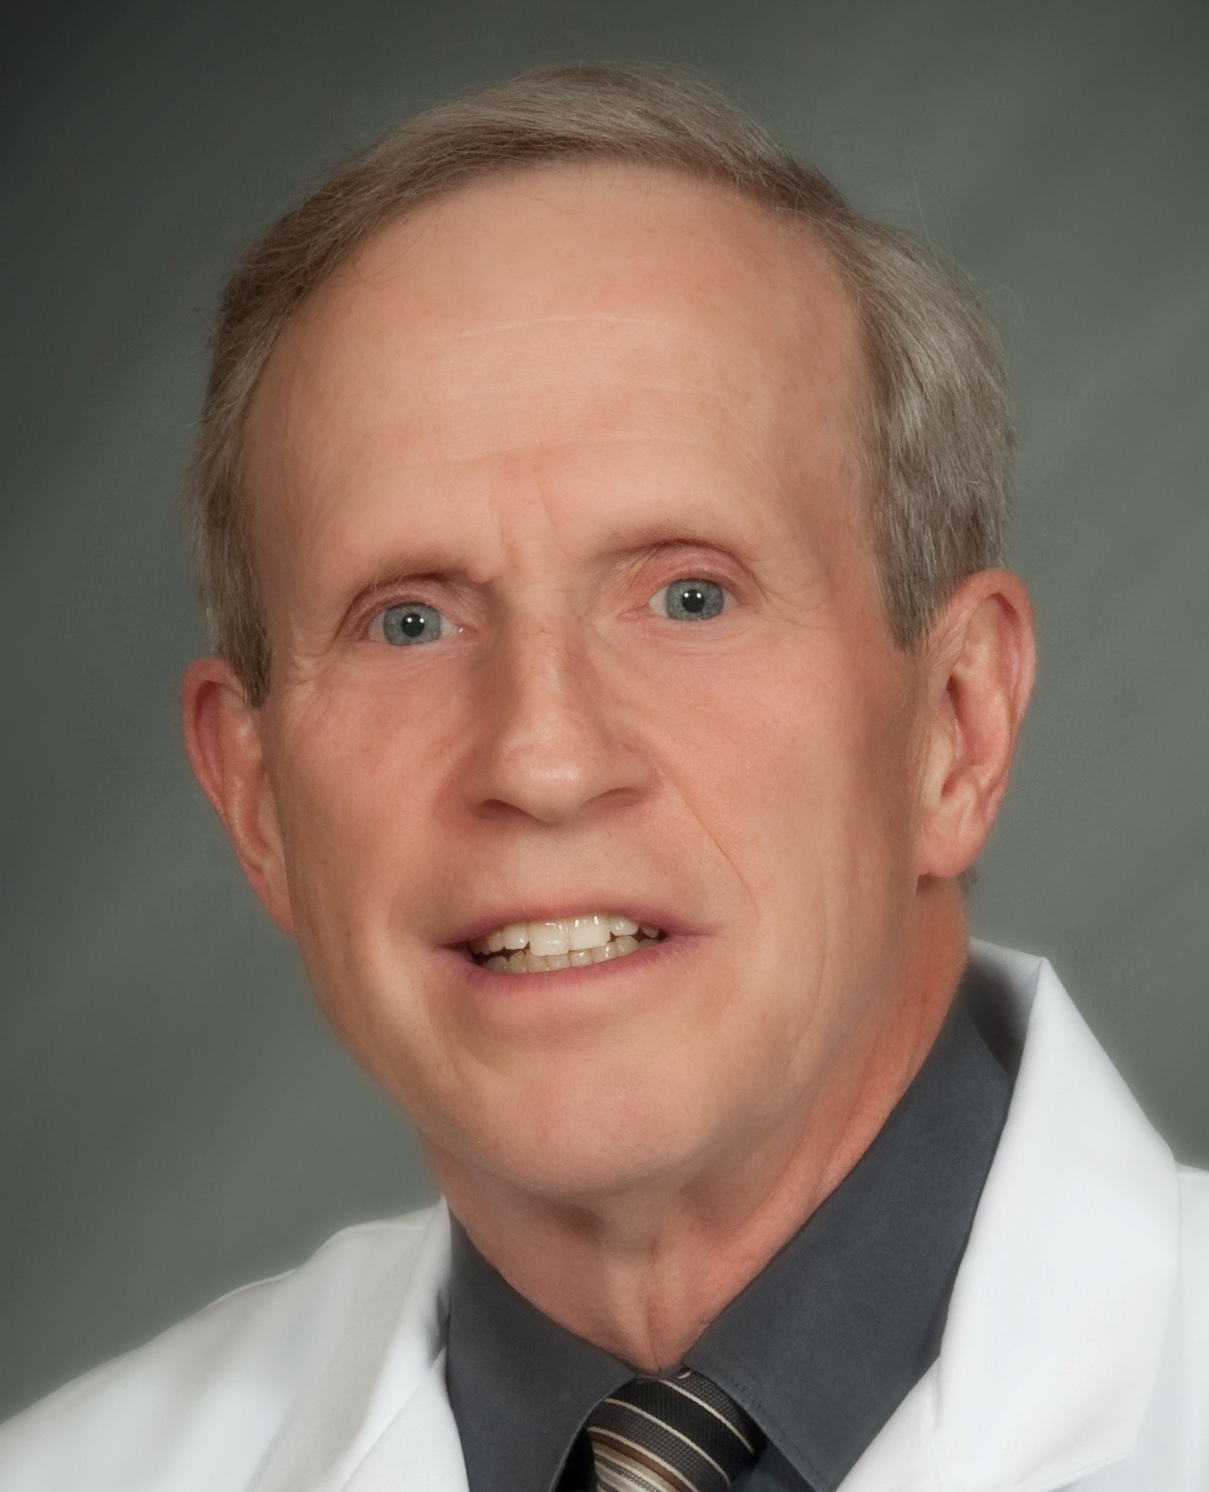 Fred J. Pilcher, FAAOS, MD